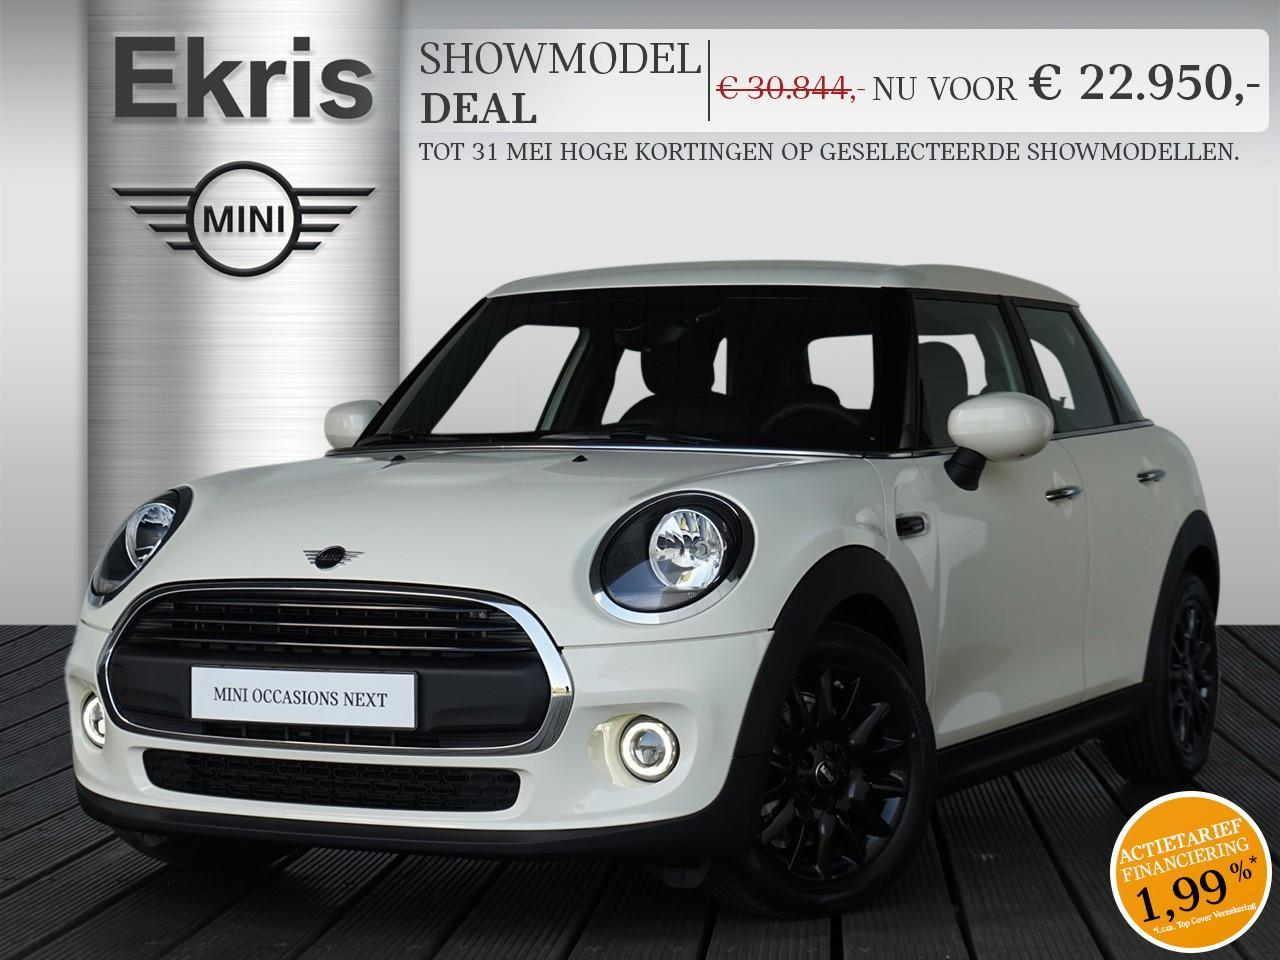 Mini 5-deurs One pepper + business - showmodel deal